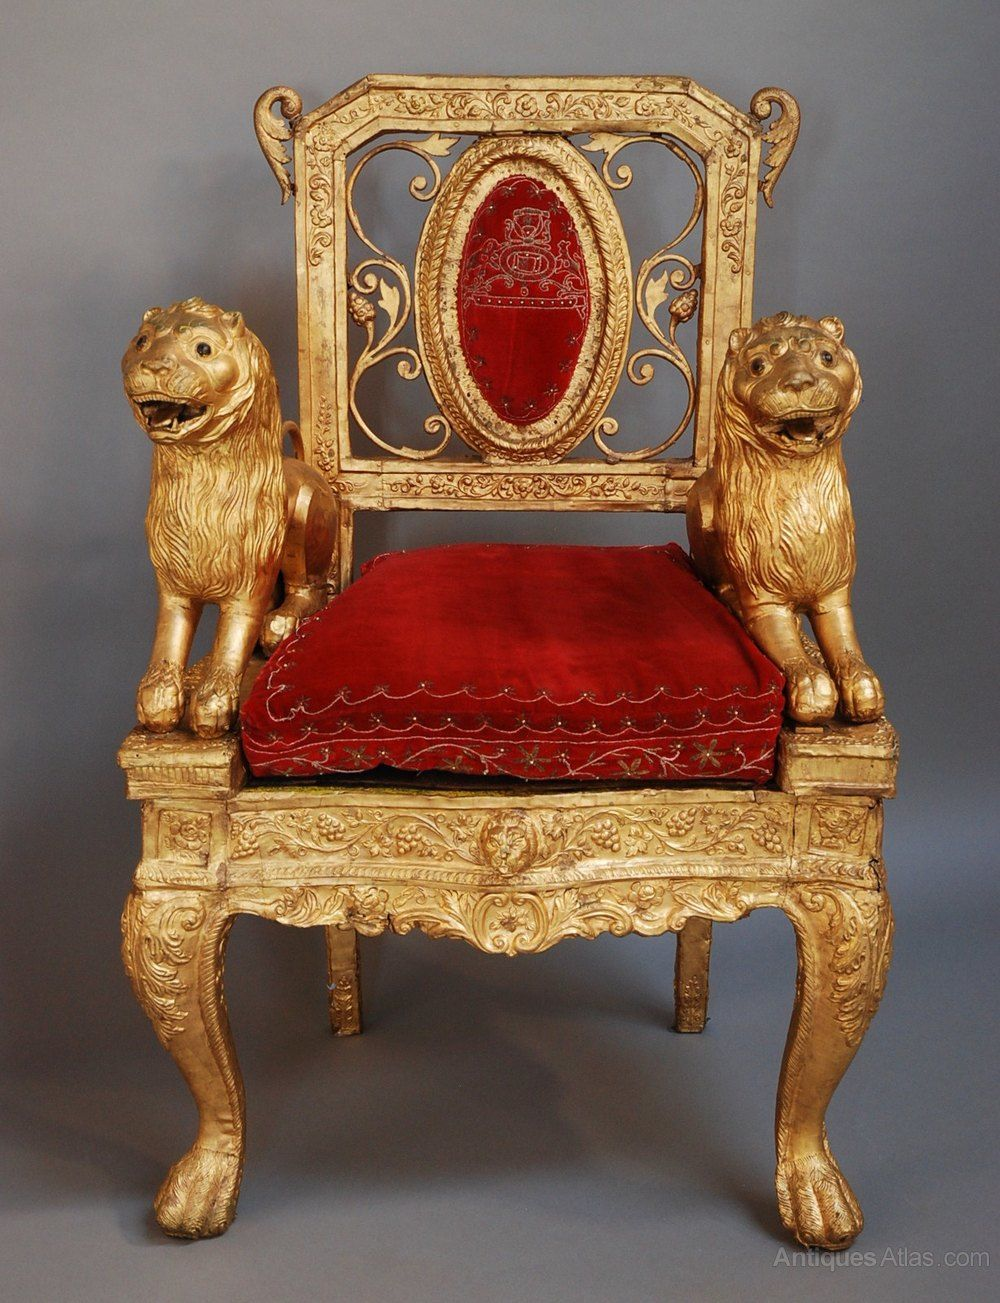 Mid/late 19th Century Indian Throne Chair - Antiques Atlas - Mid/late 19th Century Indian Throne Chair - Antiques Atlas Paper